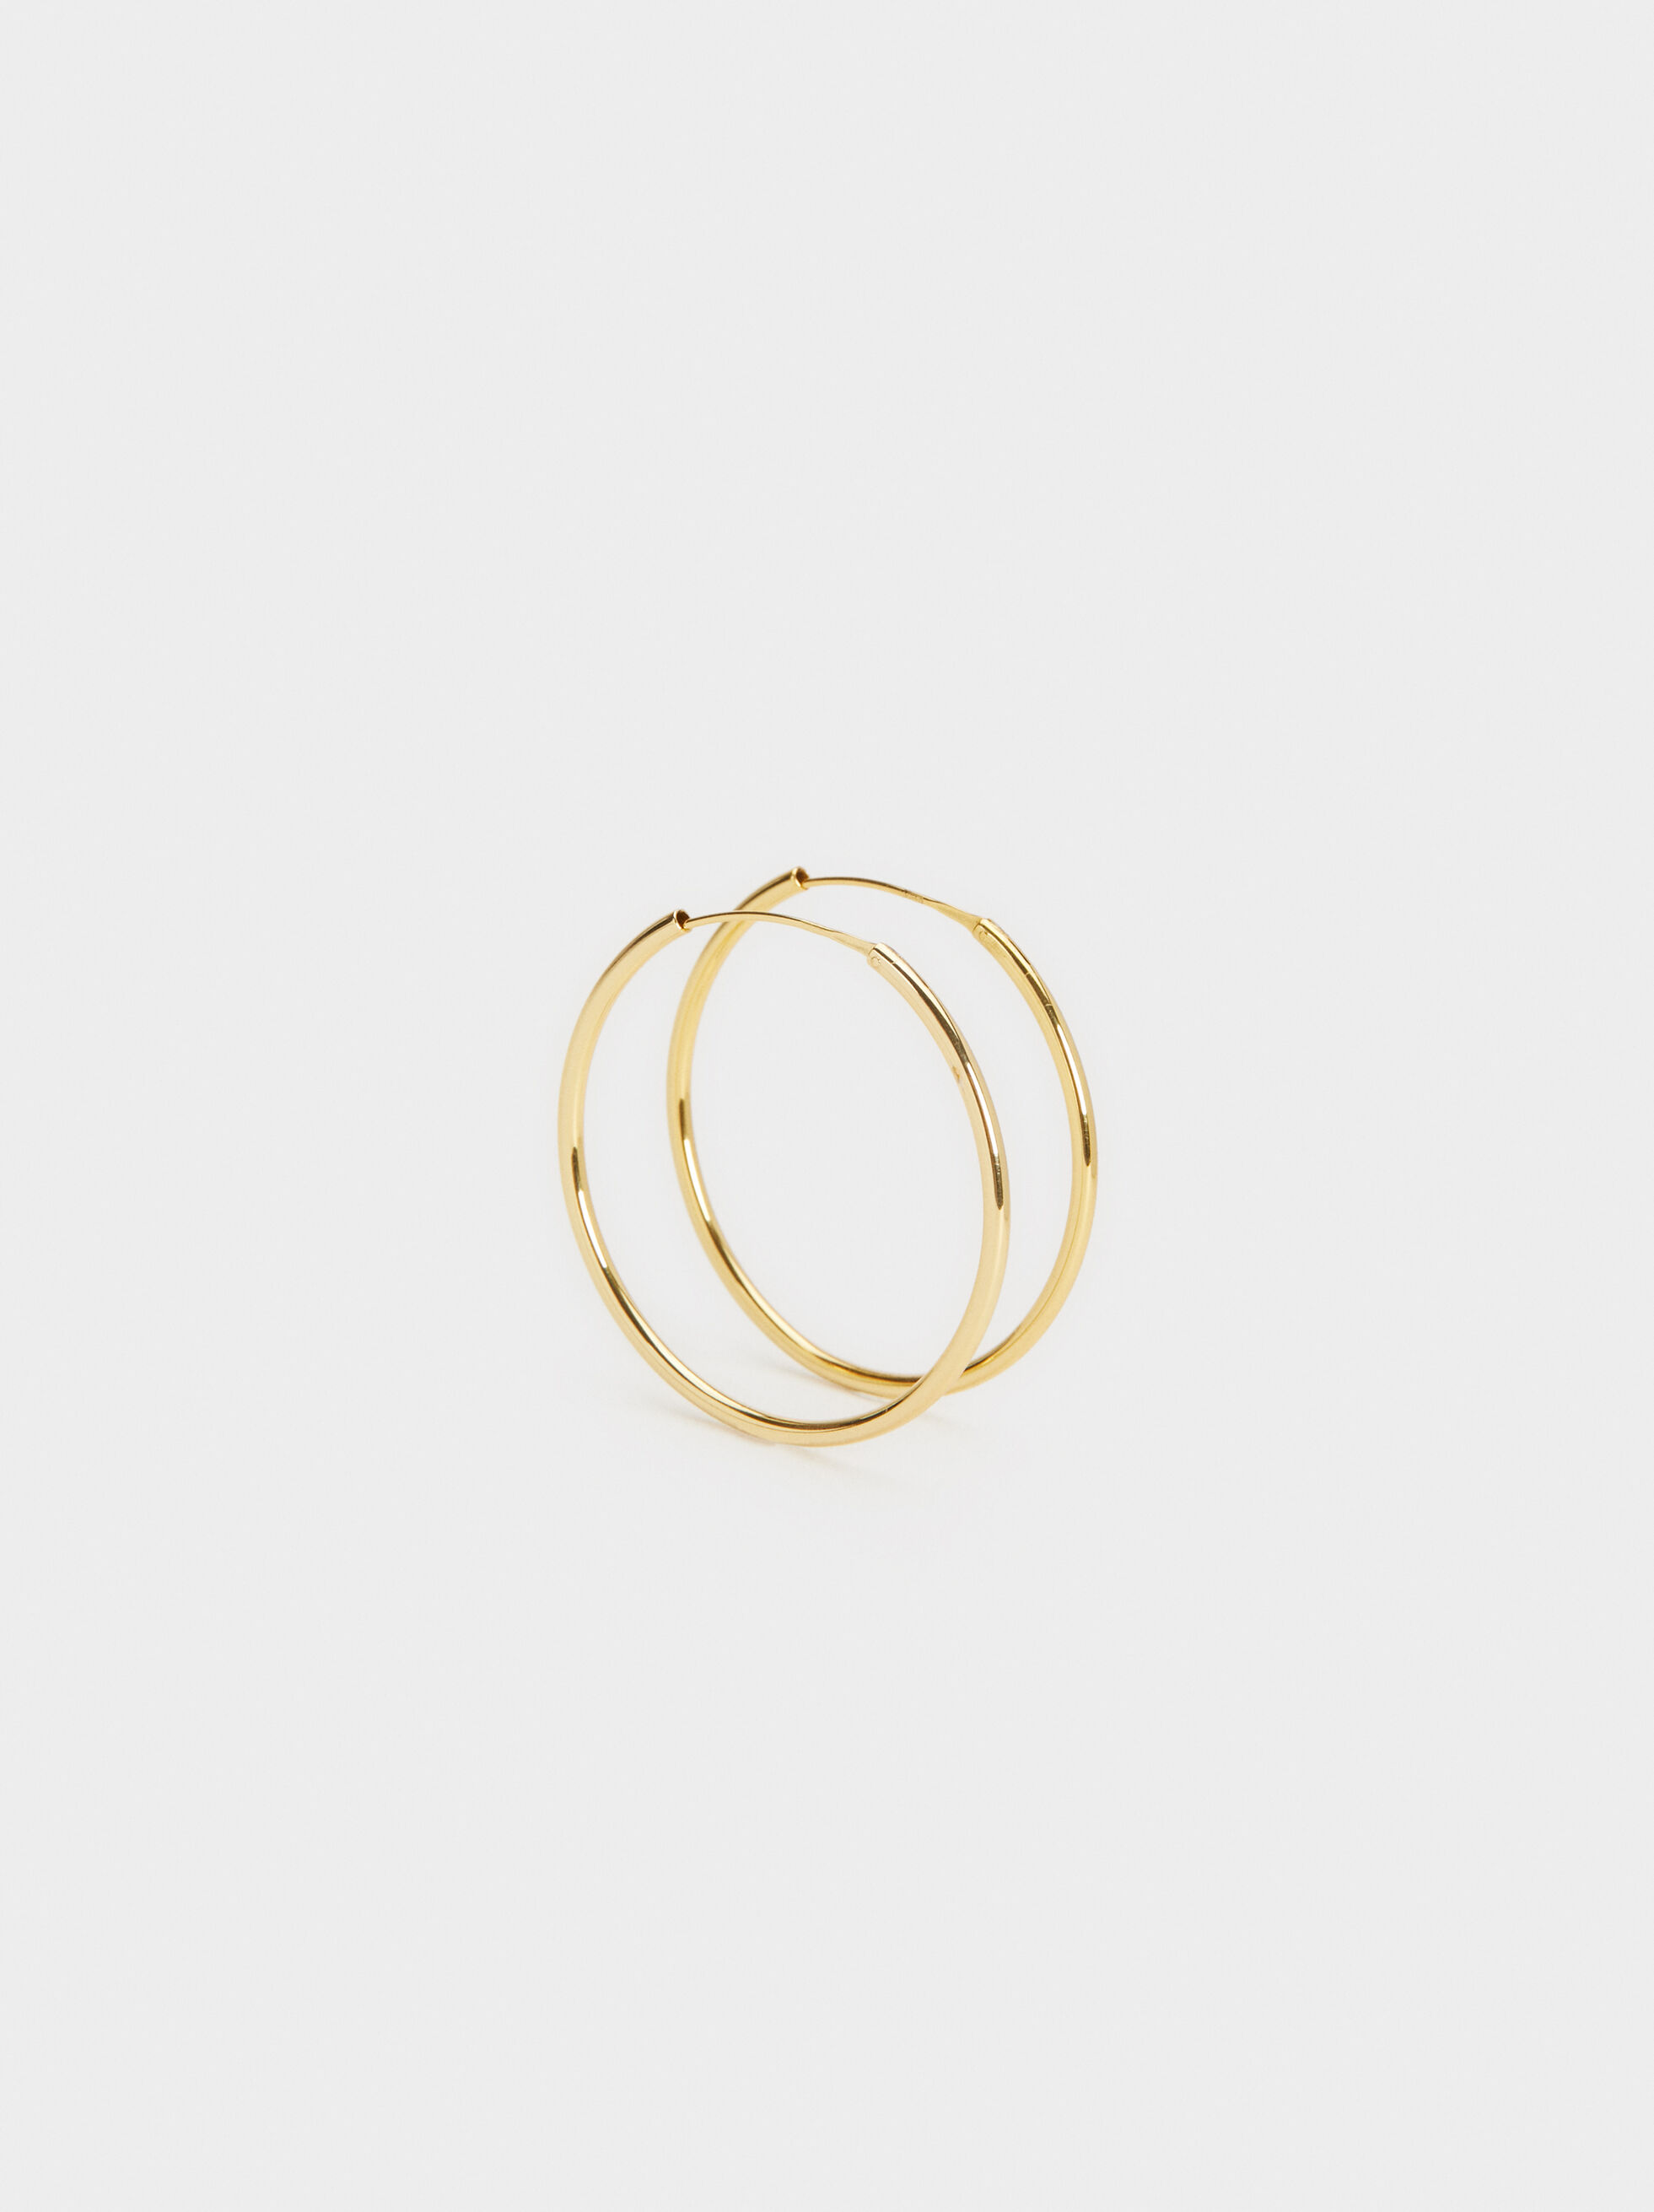 925 Silver Gold-Finish Large Hoop Earrings, , hi-res